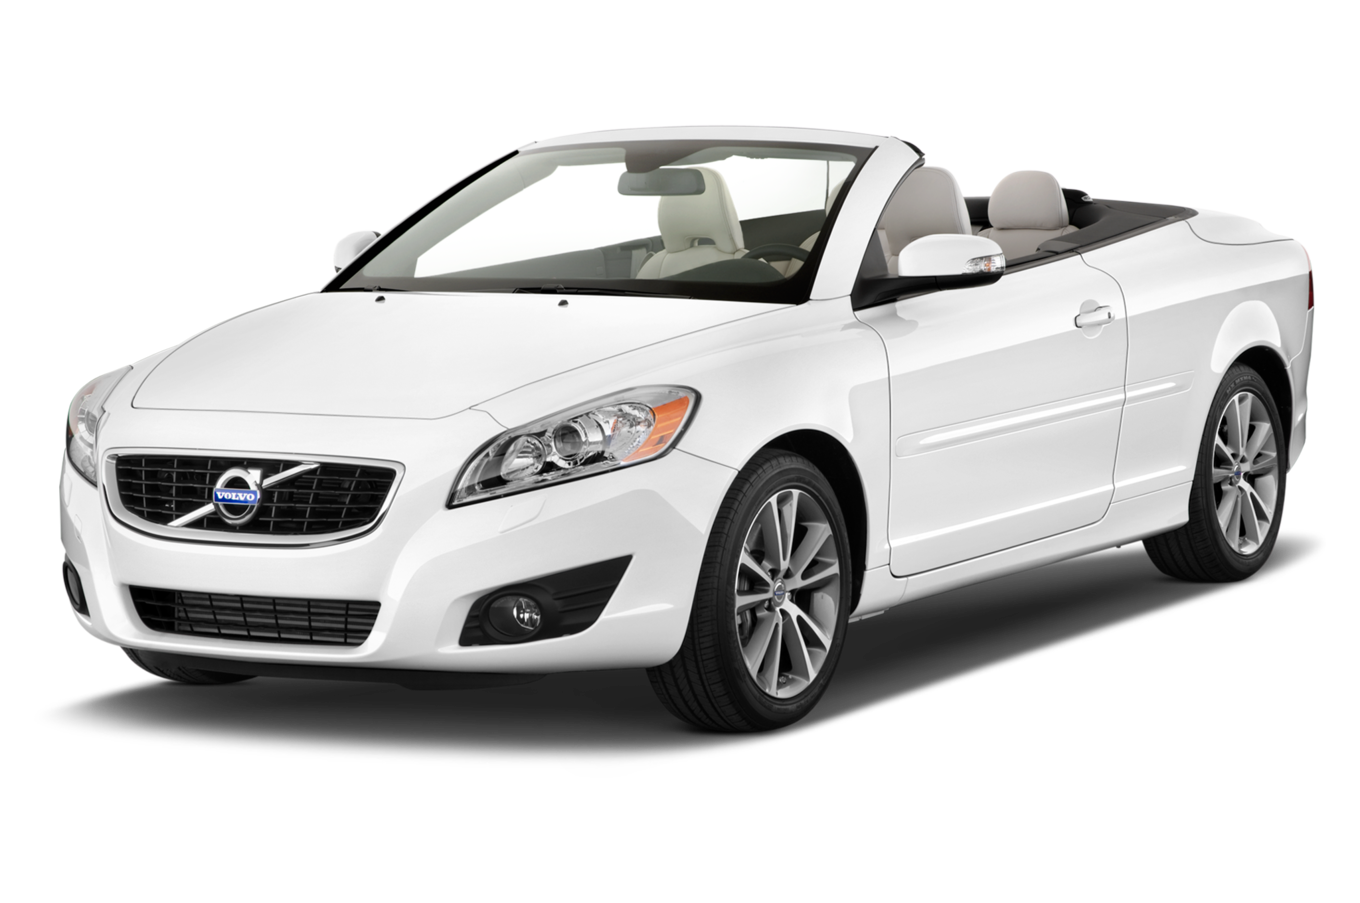 Volvo cabriolet photo - 9